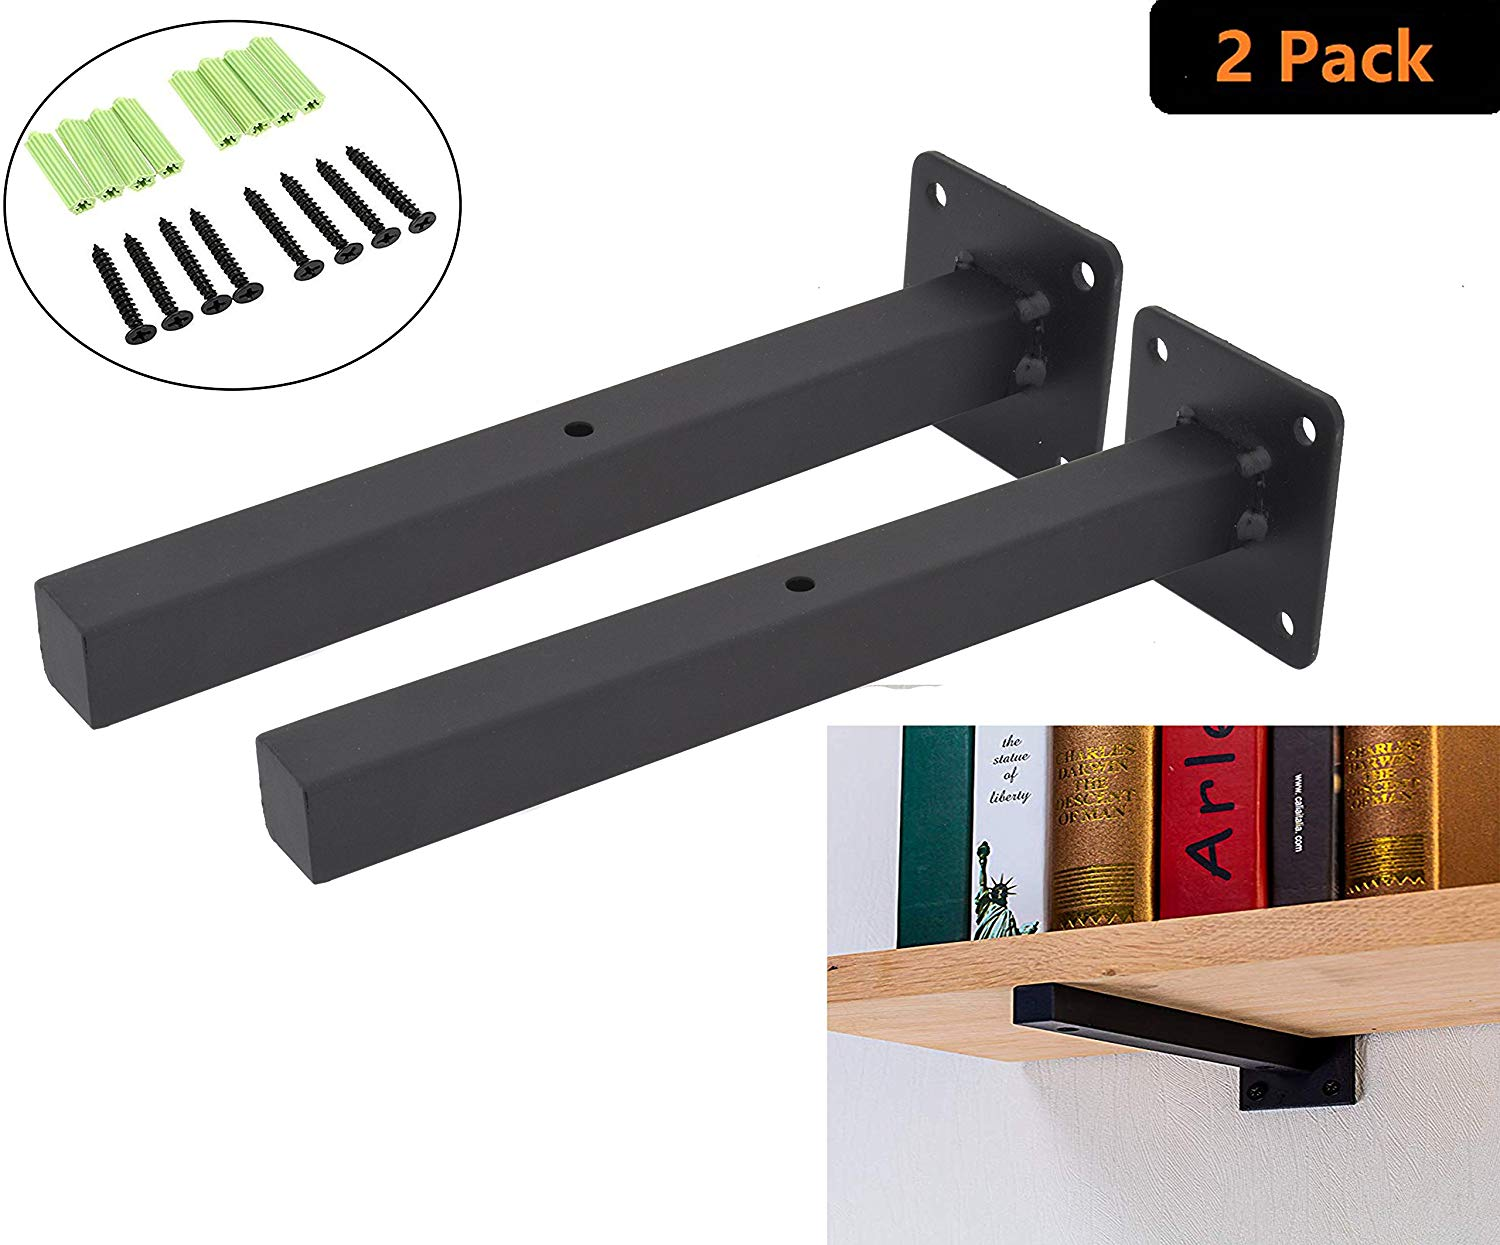 industrial black floating shelf brackets retro wall mounted supports includes screws anchors square inch addgrace home decorative hooks for coats without nails glass over bathroom